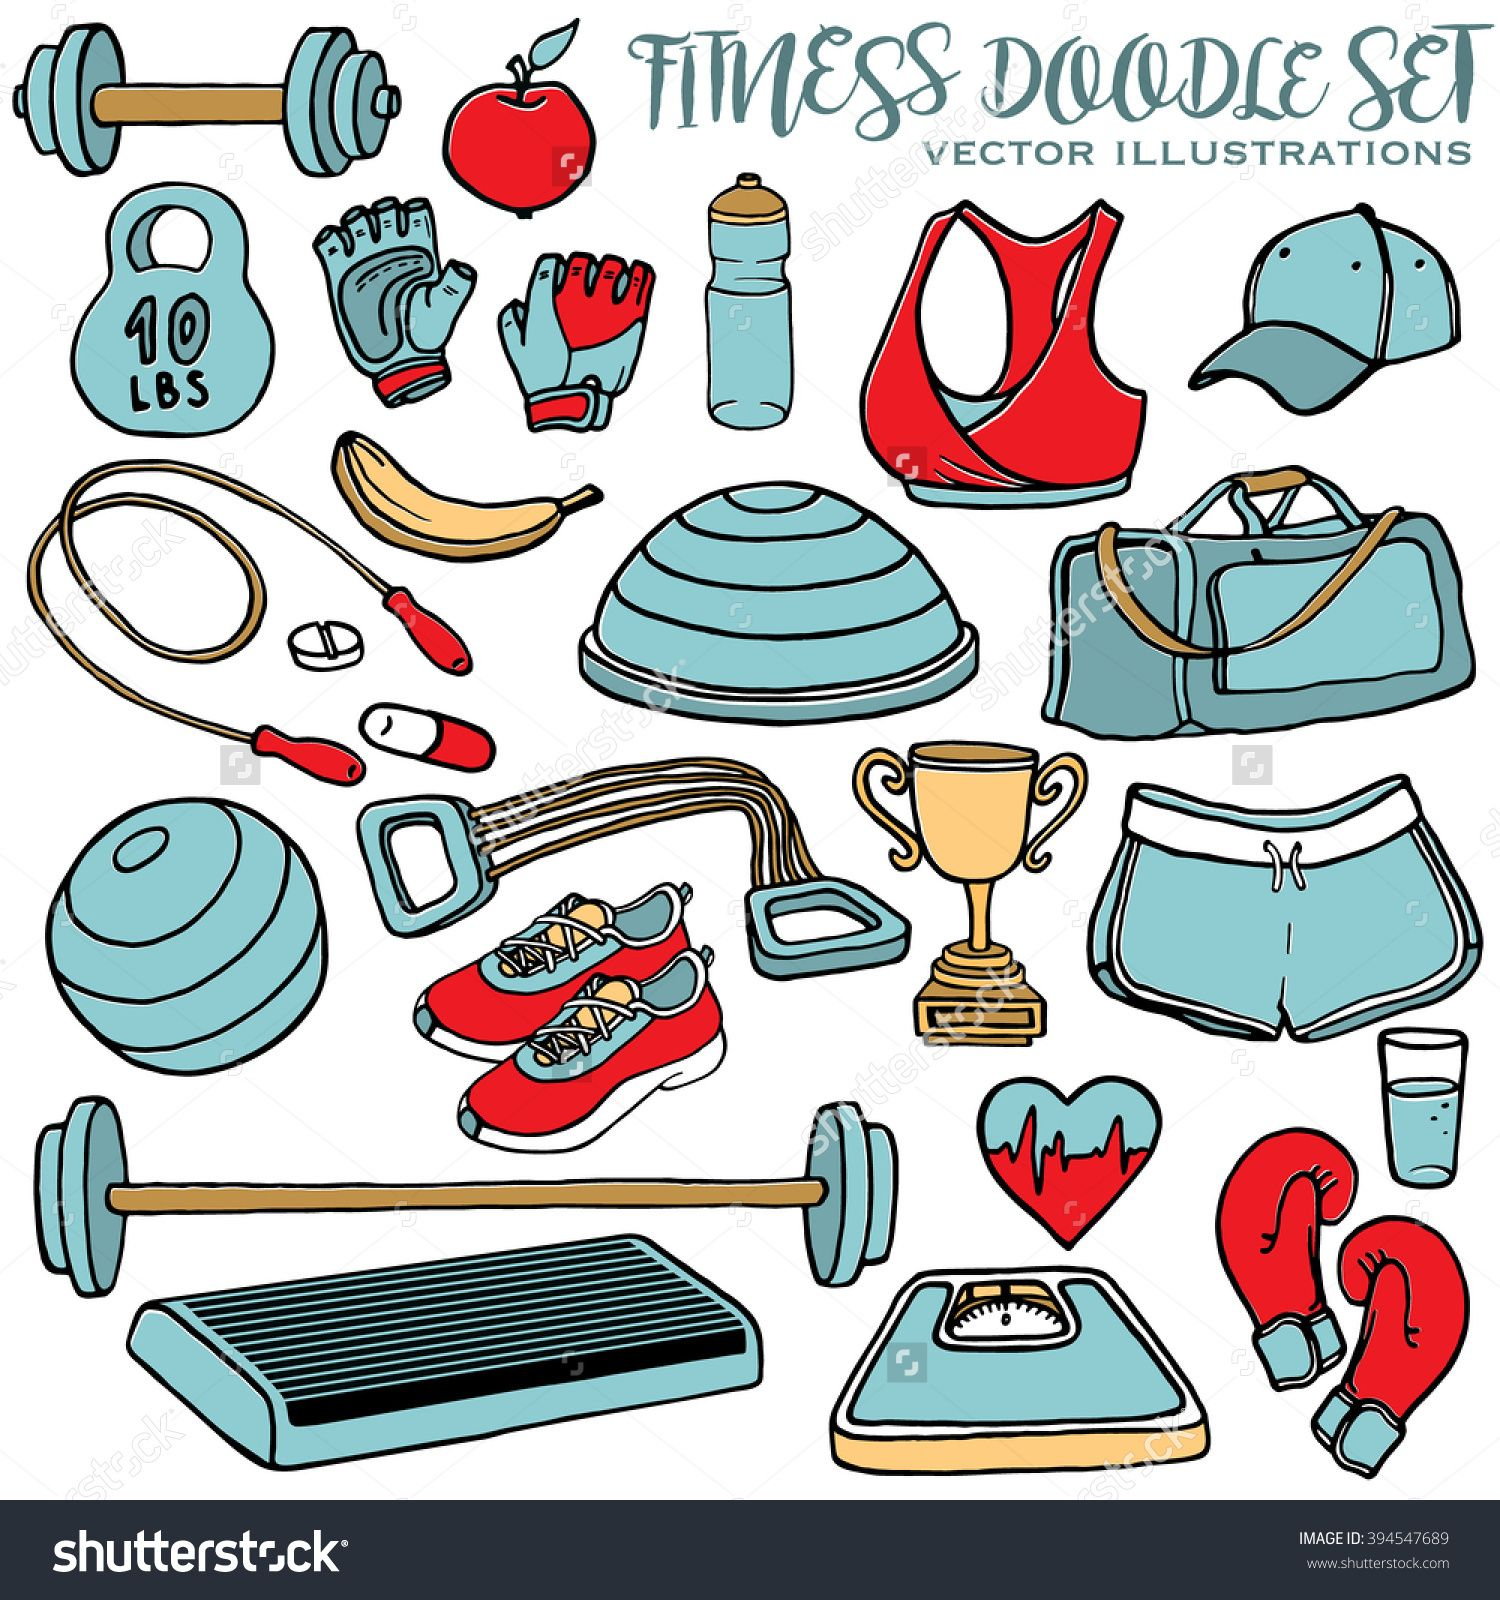 Hand Drawn Fitness Doodle Set. Sport Clothes, Dumbbell